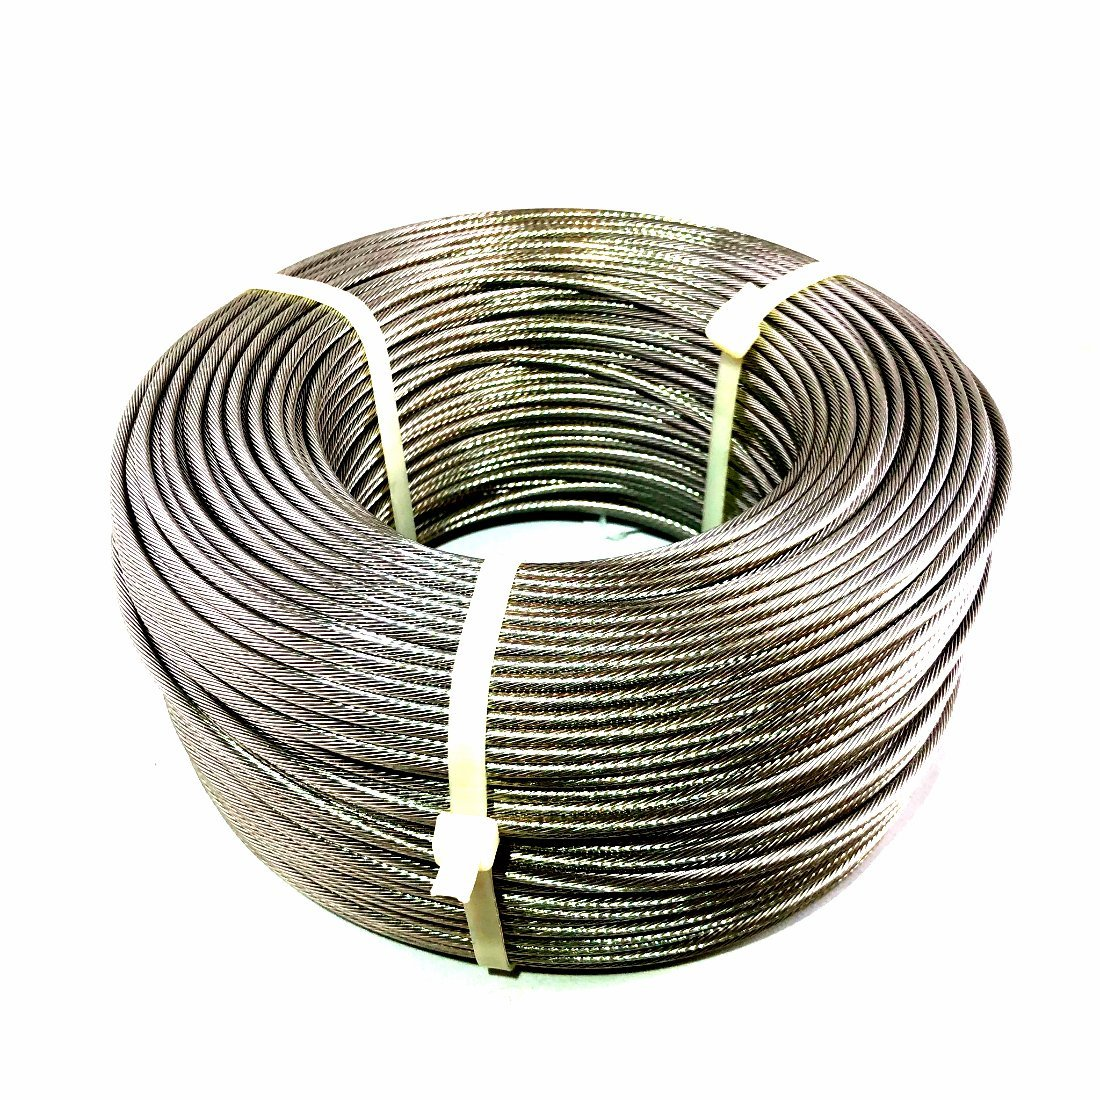 LUX 1/8 1x19 Strand Stainless Steel Cable Best Cable for Railing T316 - 500 feet Generic